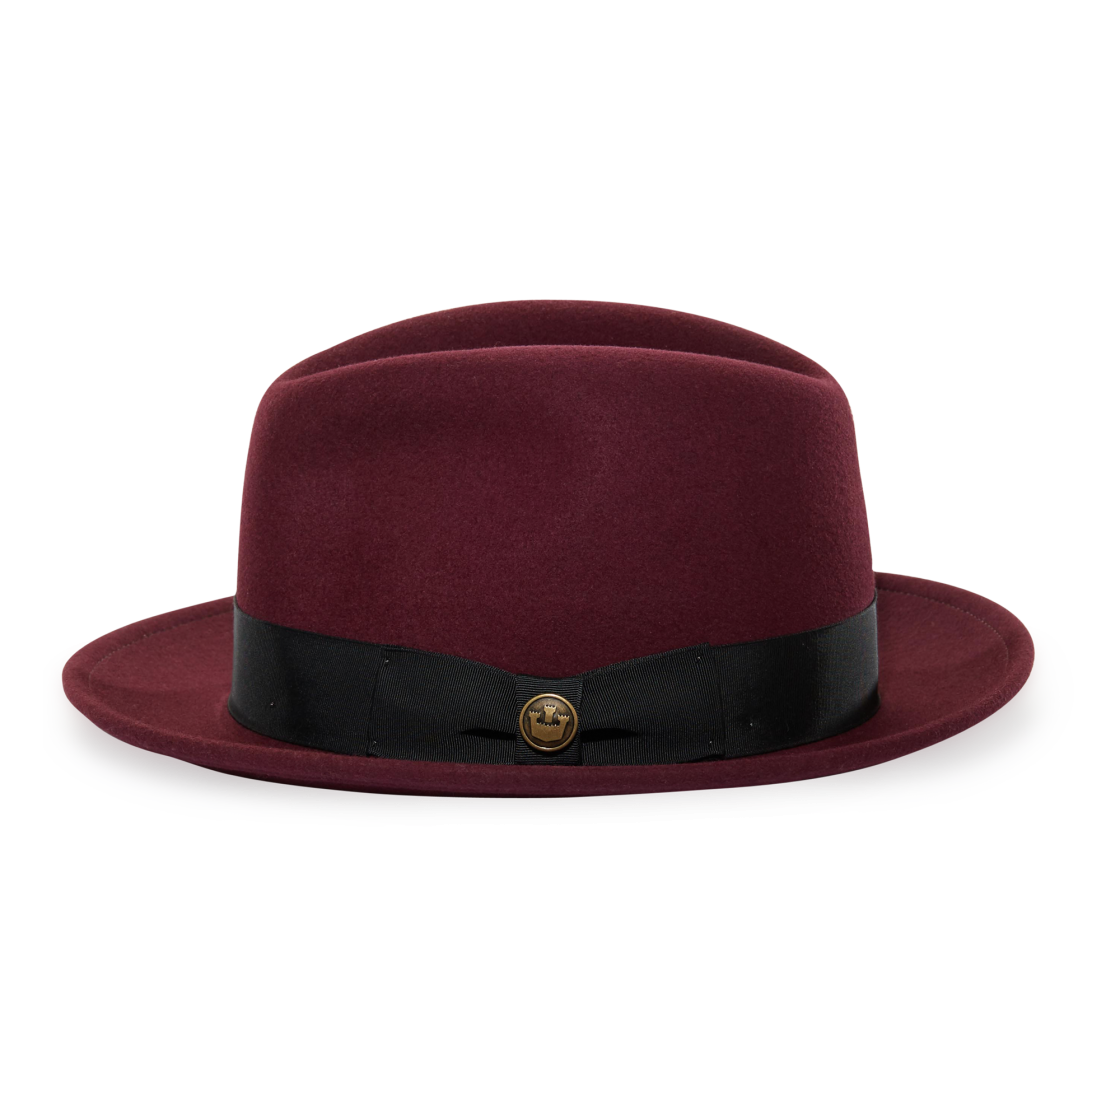 Dean The Butcher Whiskeyfelt Wide Brim Fedora hat front view 8203c42884aa